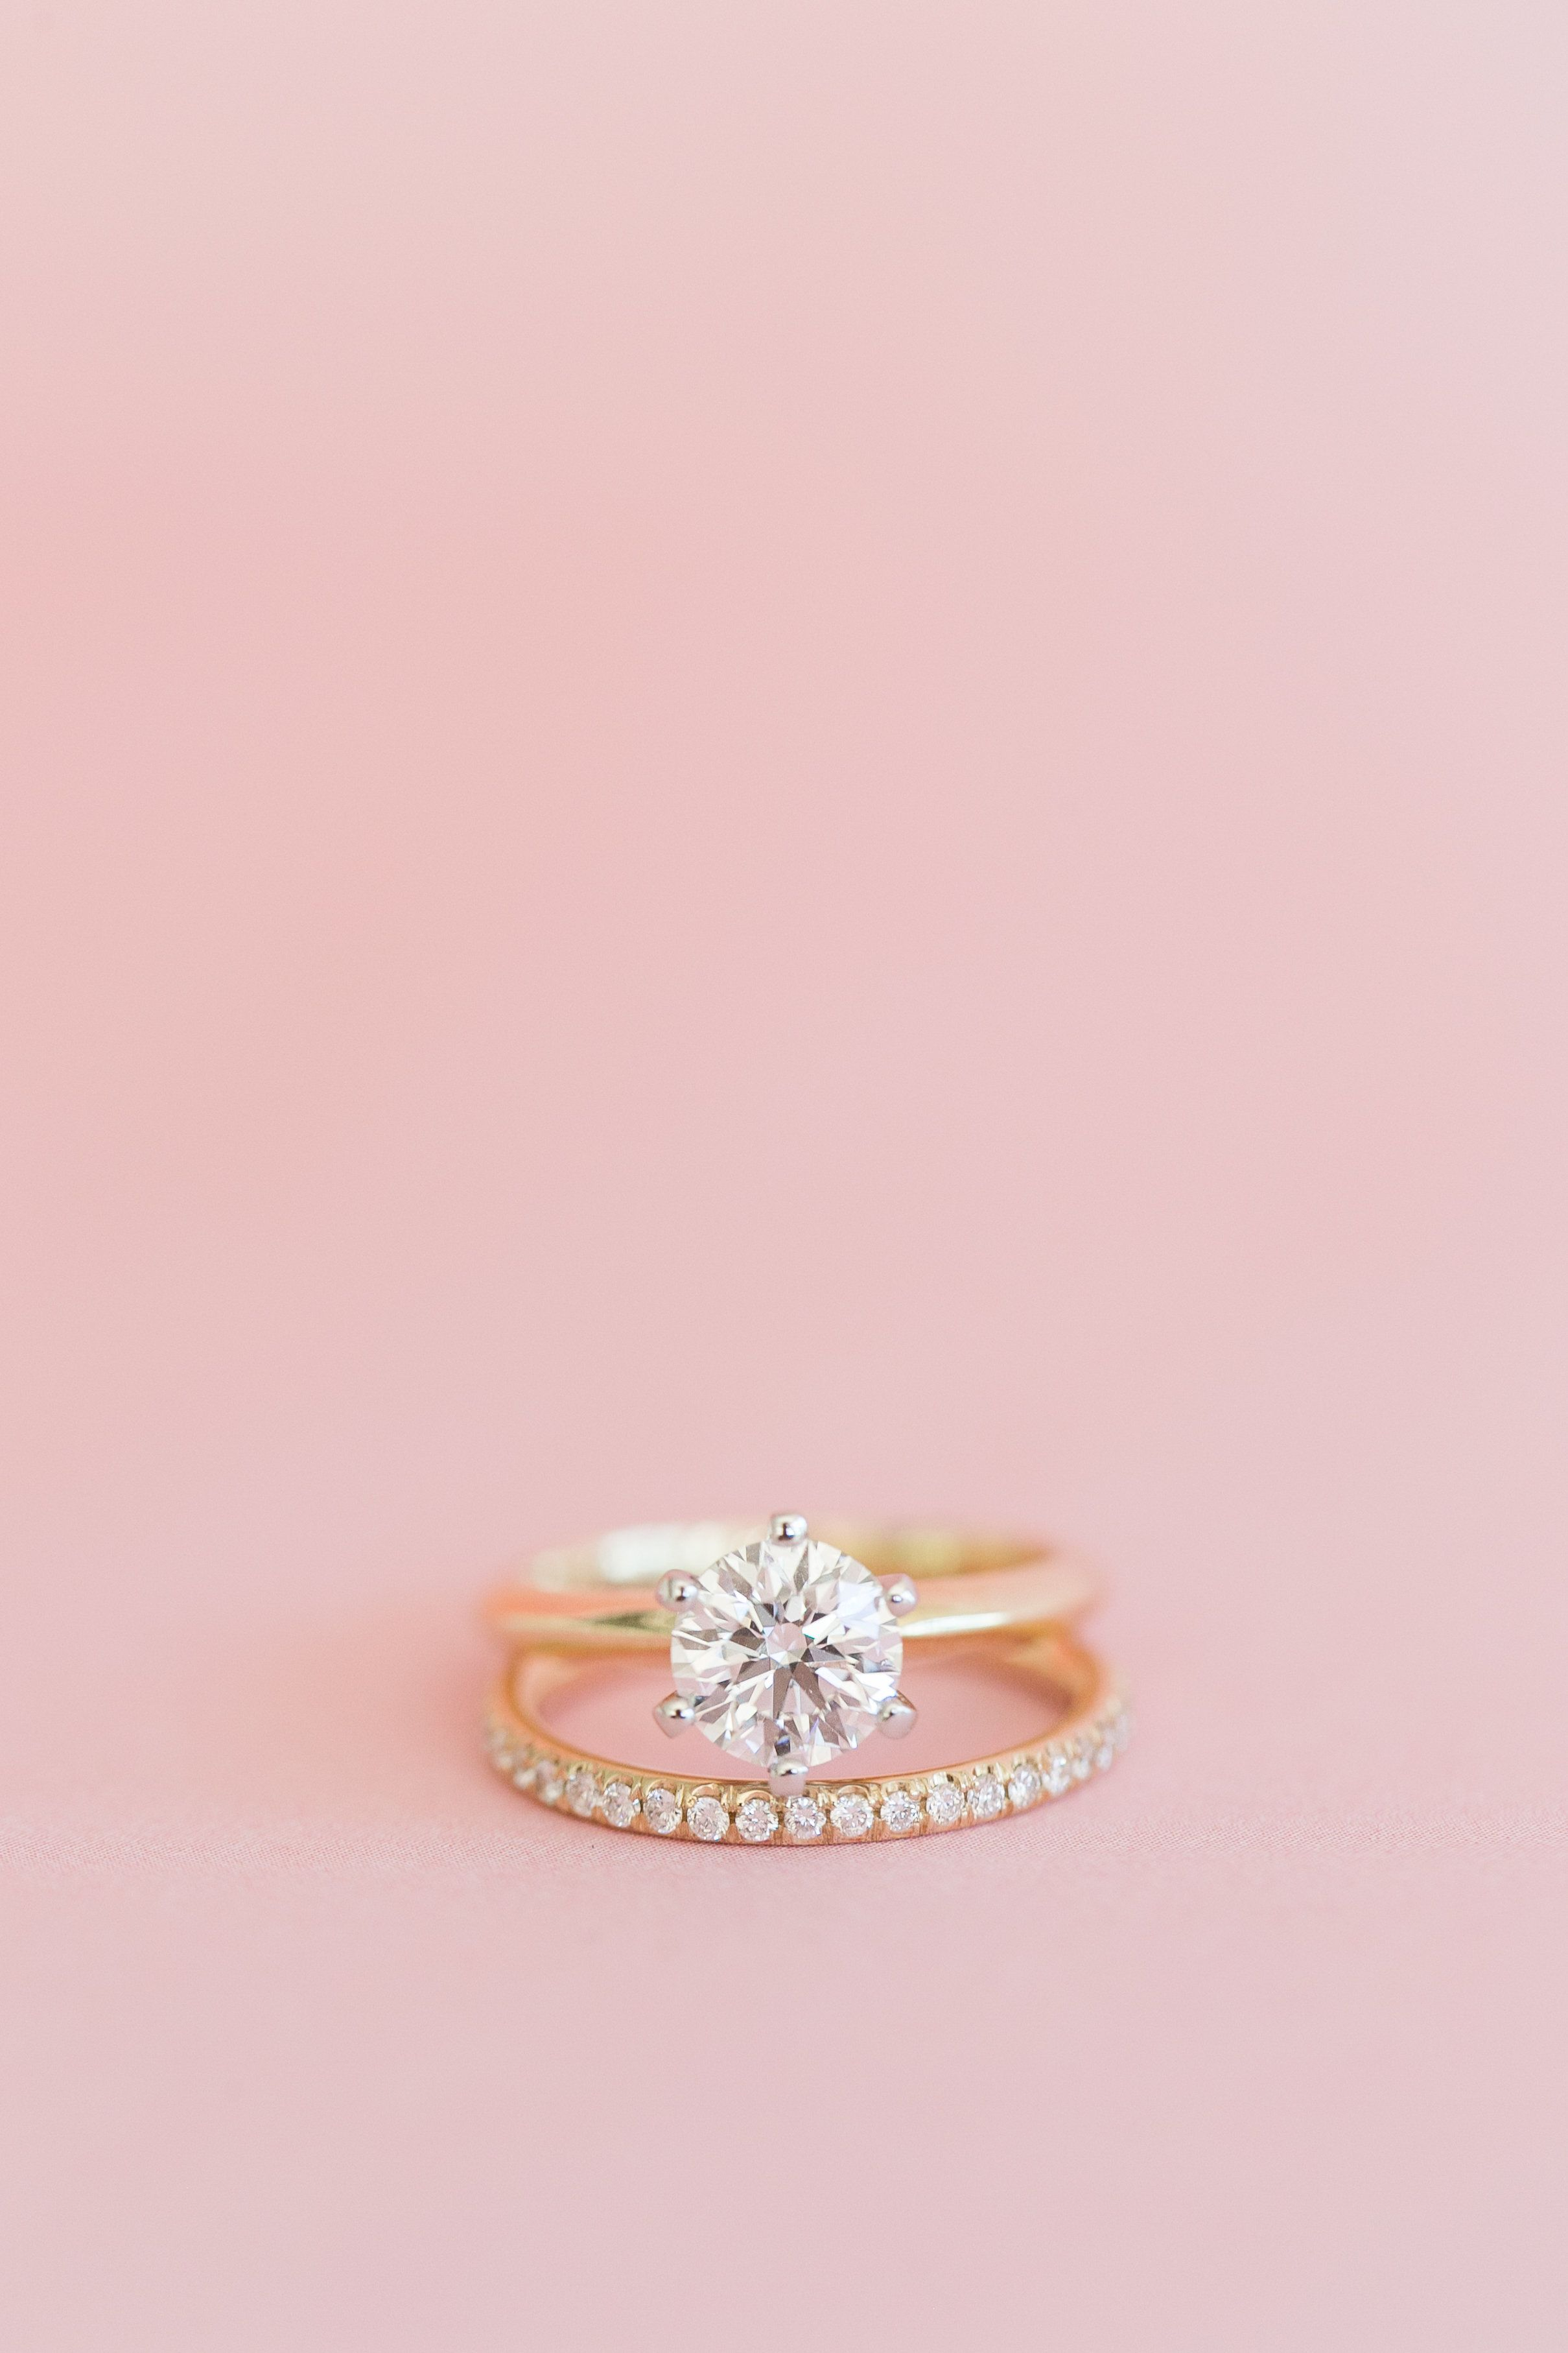 Charming Pink and White Wedding | Engagement, Ring and Gold